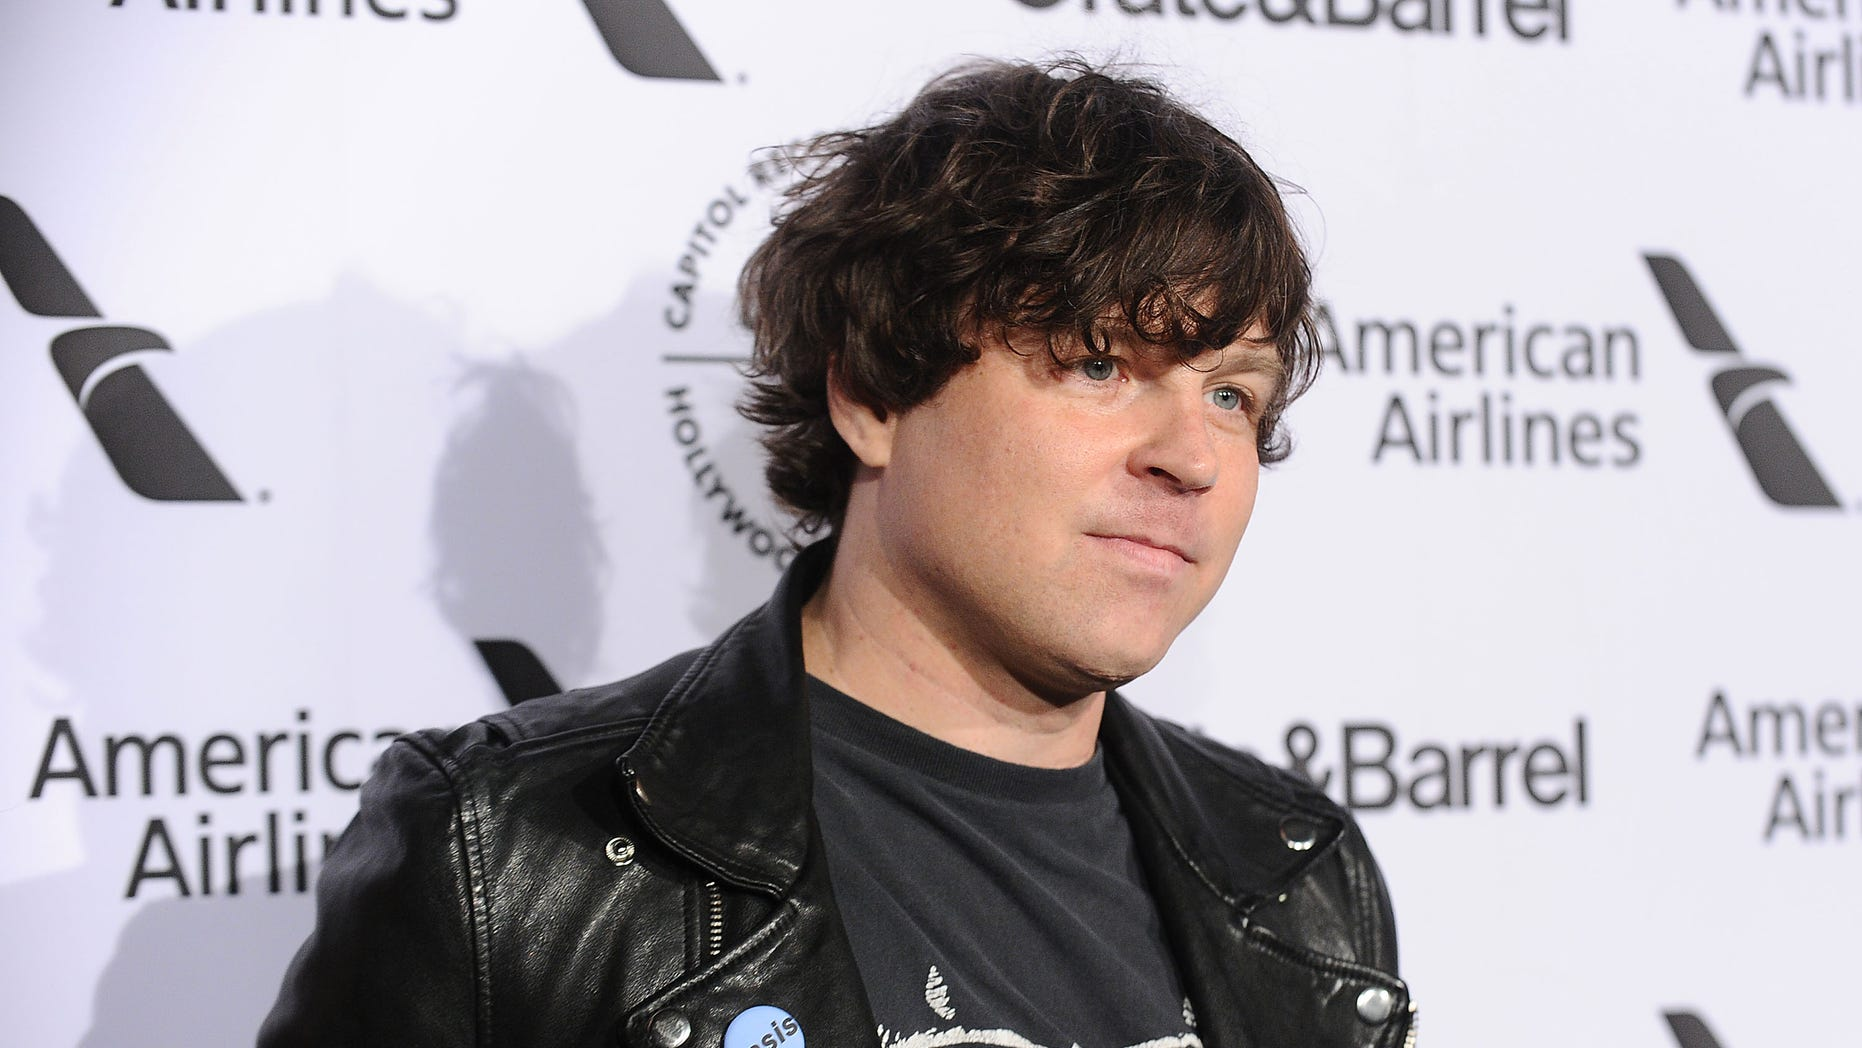 Musician Ryan Adams is reportedly seeing his music dropped by radio stations across the country